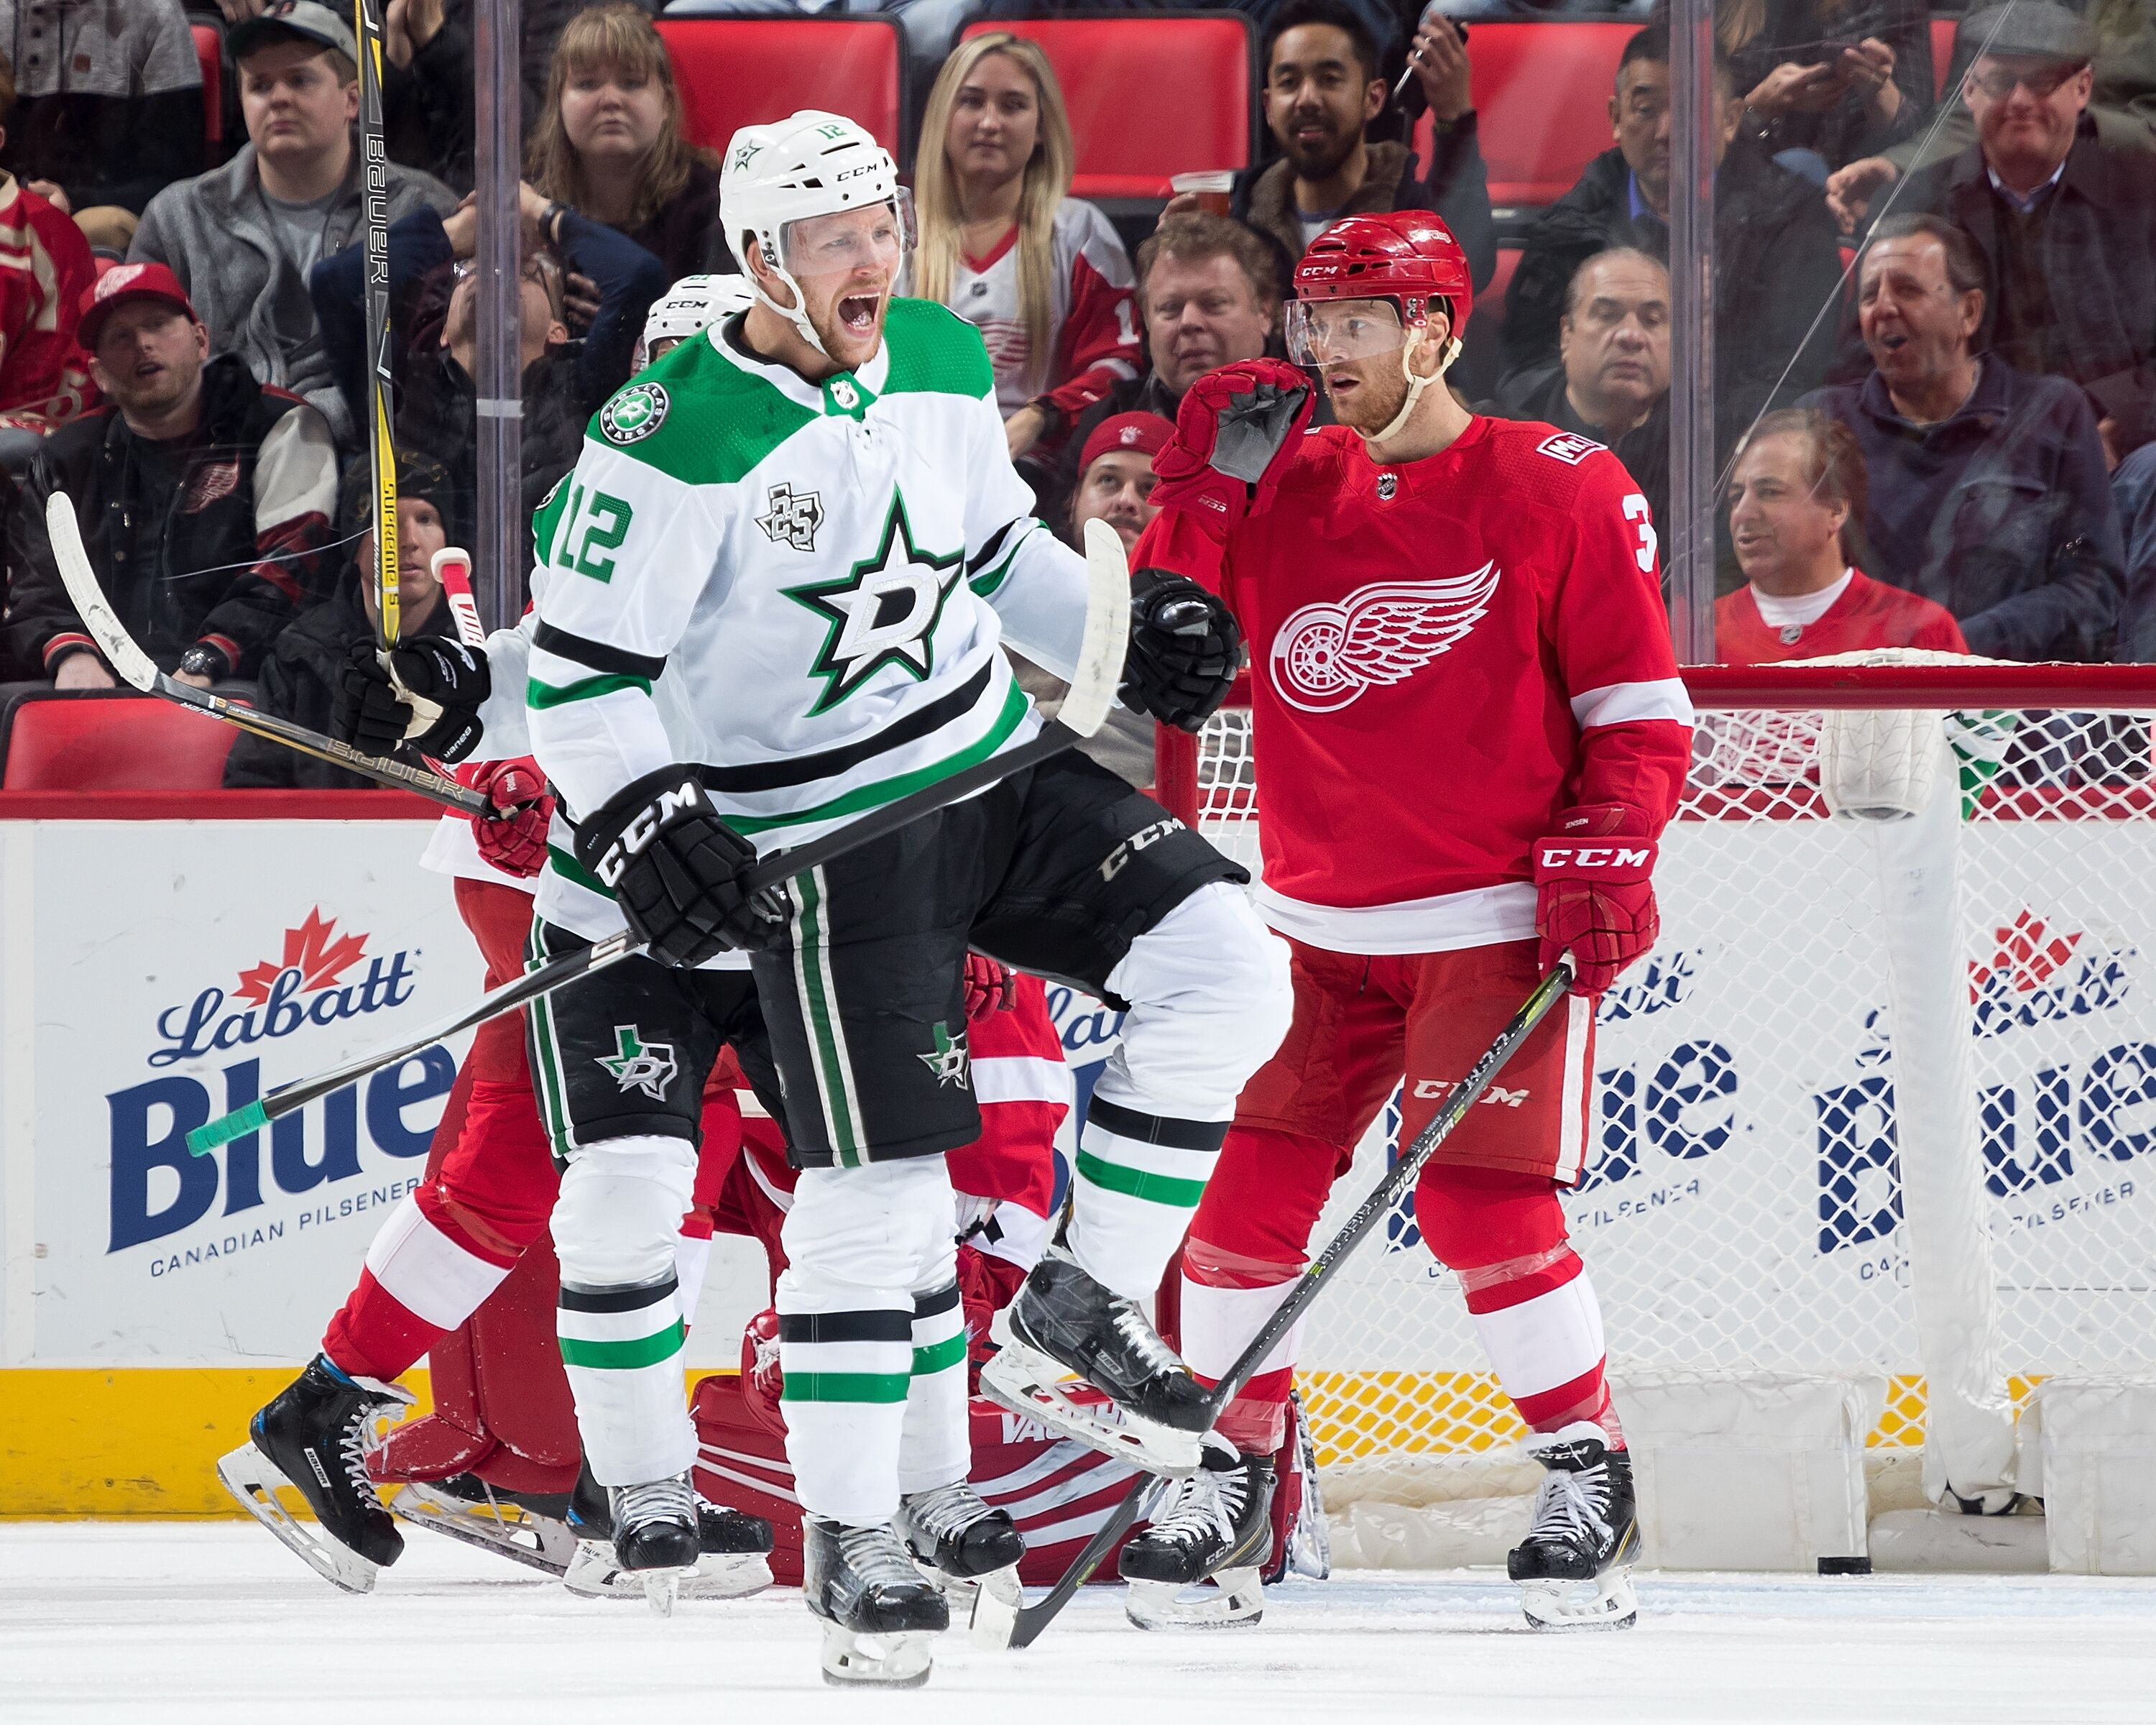 905787904-dallas-stars-v-detroit-red-wings.jpg